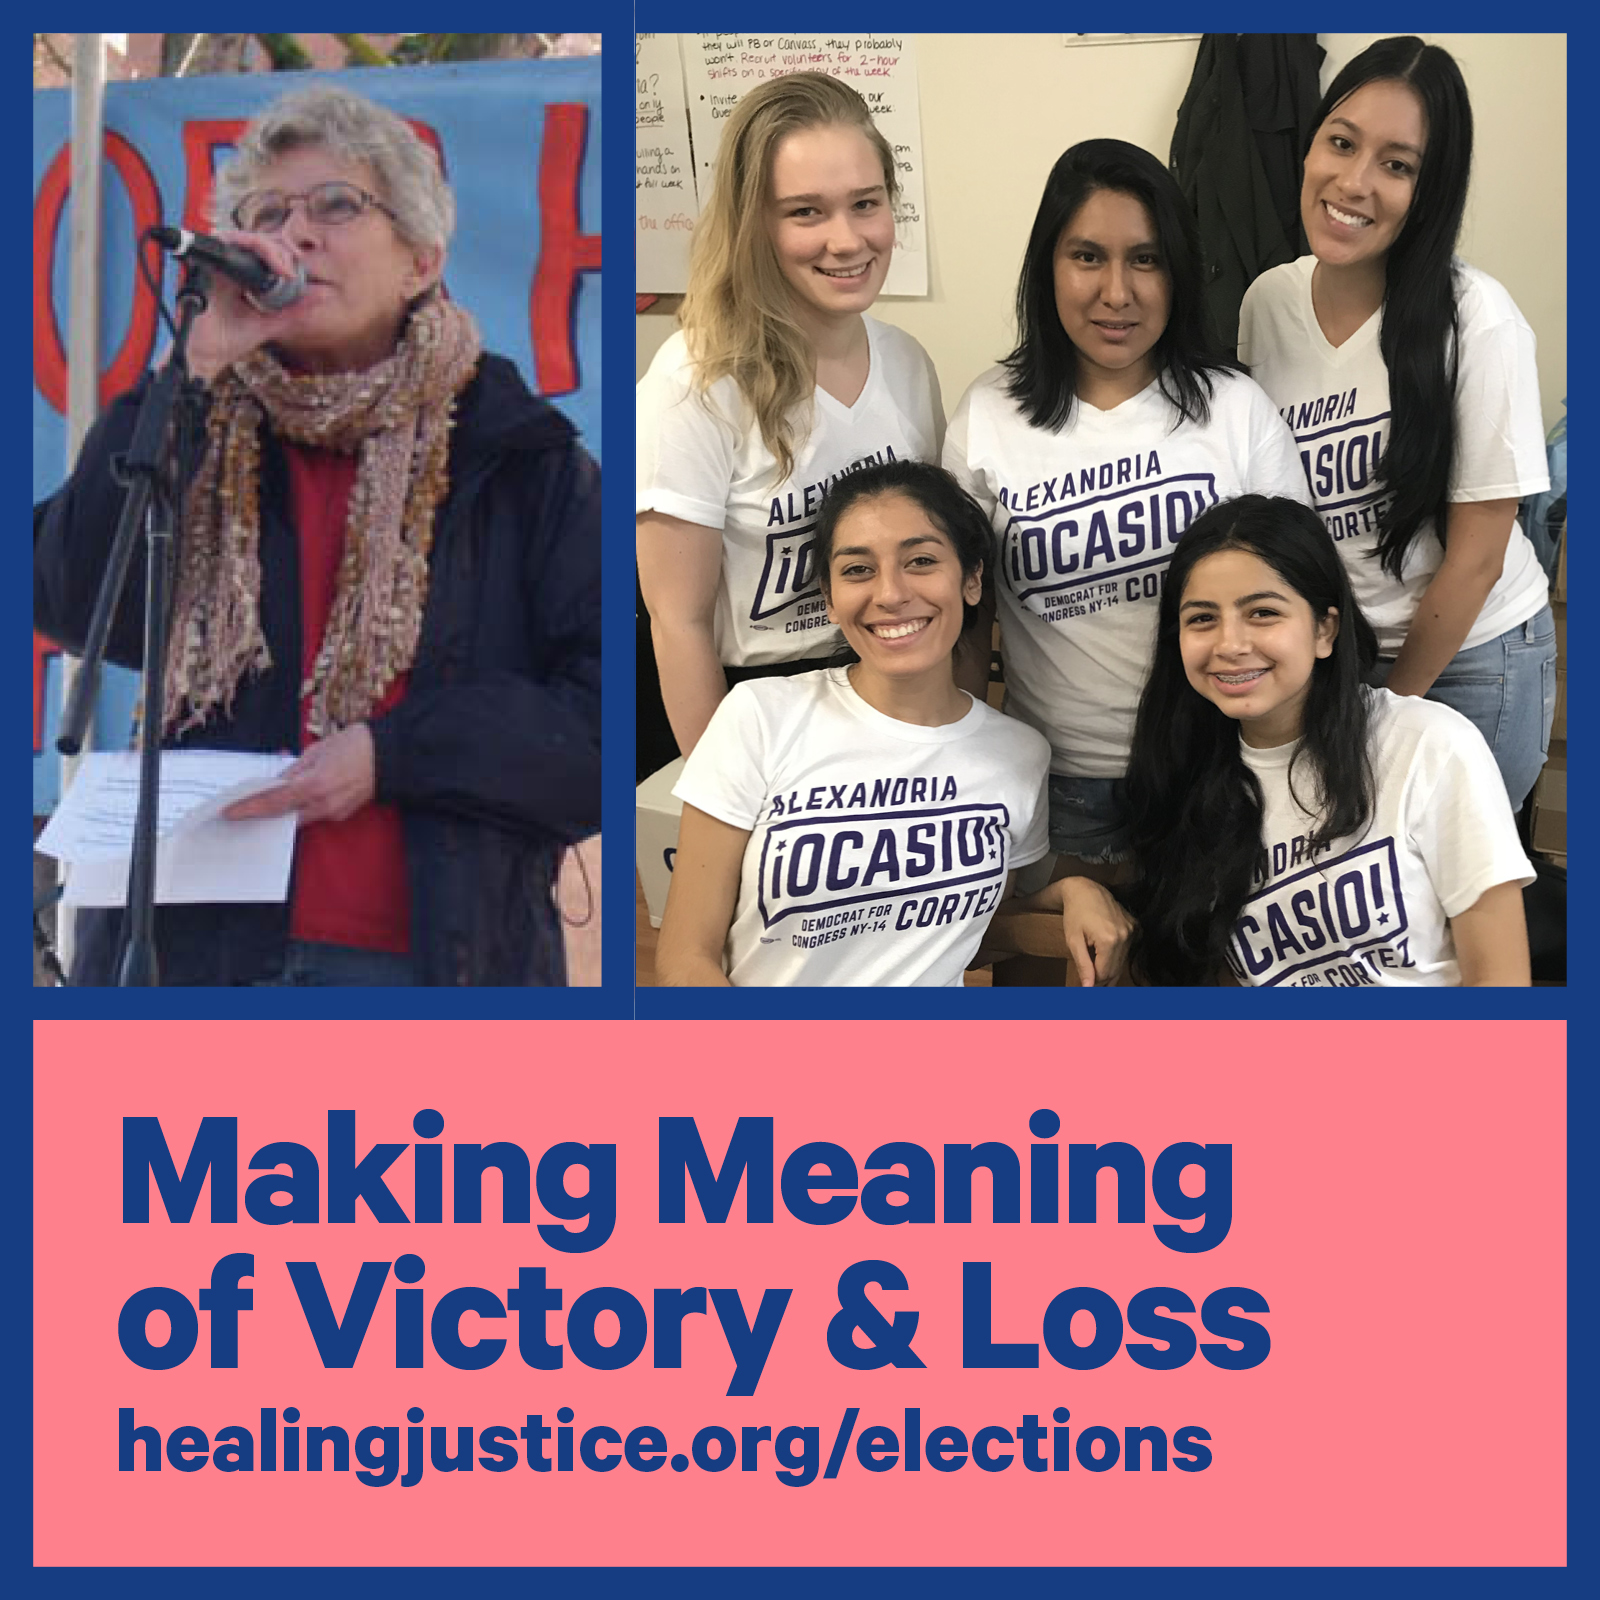 Making Meaning of Victory & Loss with Maurice Mitchell (Working Families Party), Barbara Dudley (lifelong activist), & Alexandra Rojas (Justice Democrats)